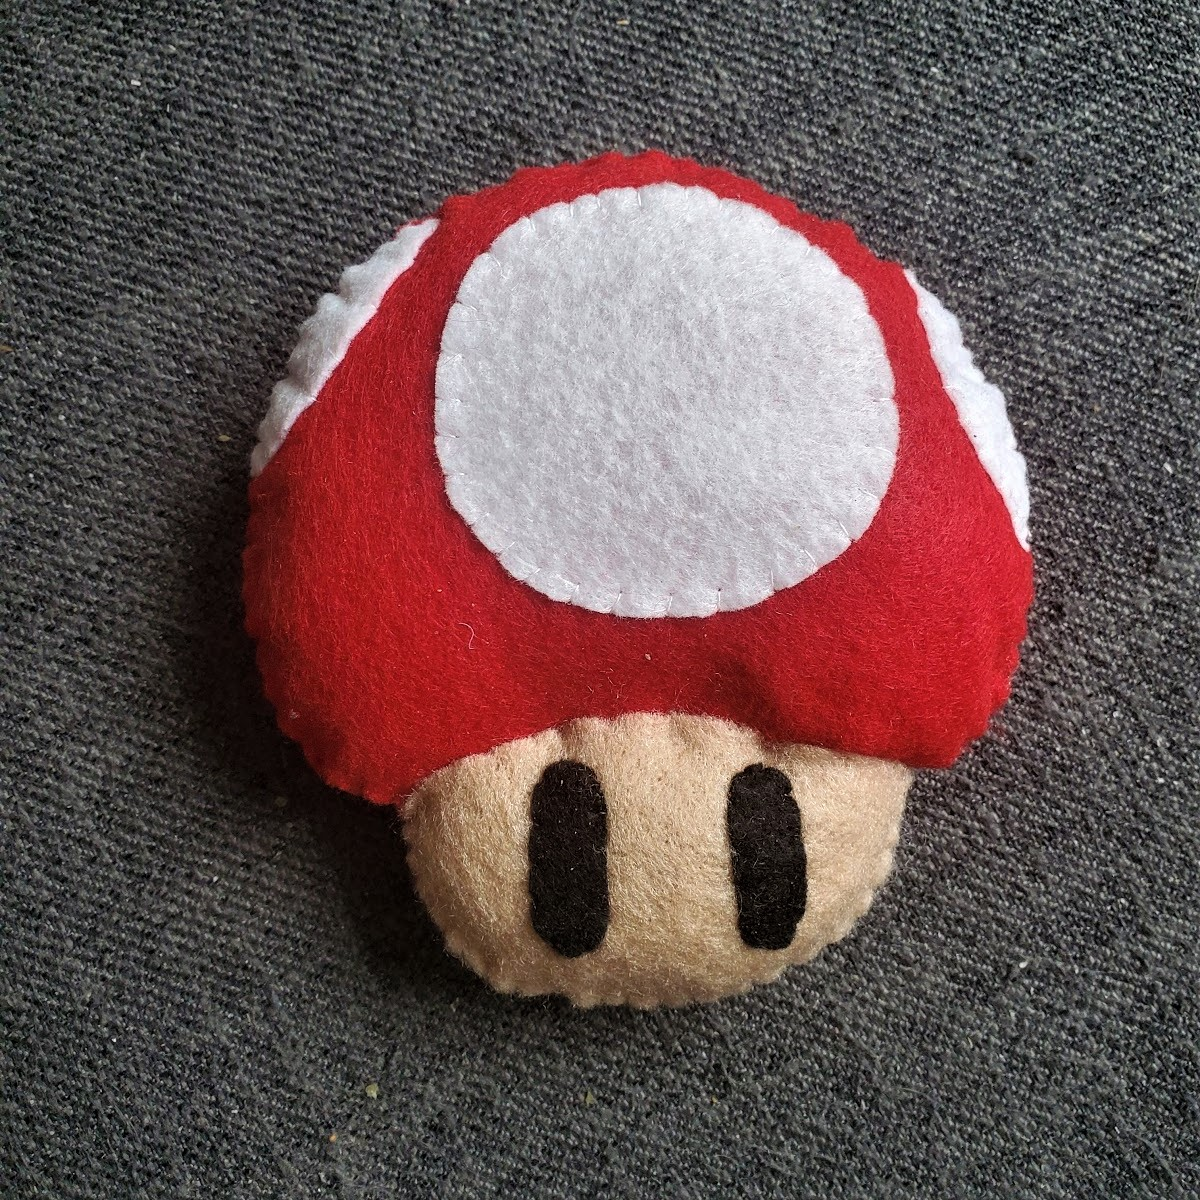 Completed Super Mario Mushroom craft